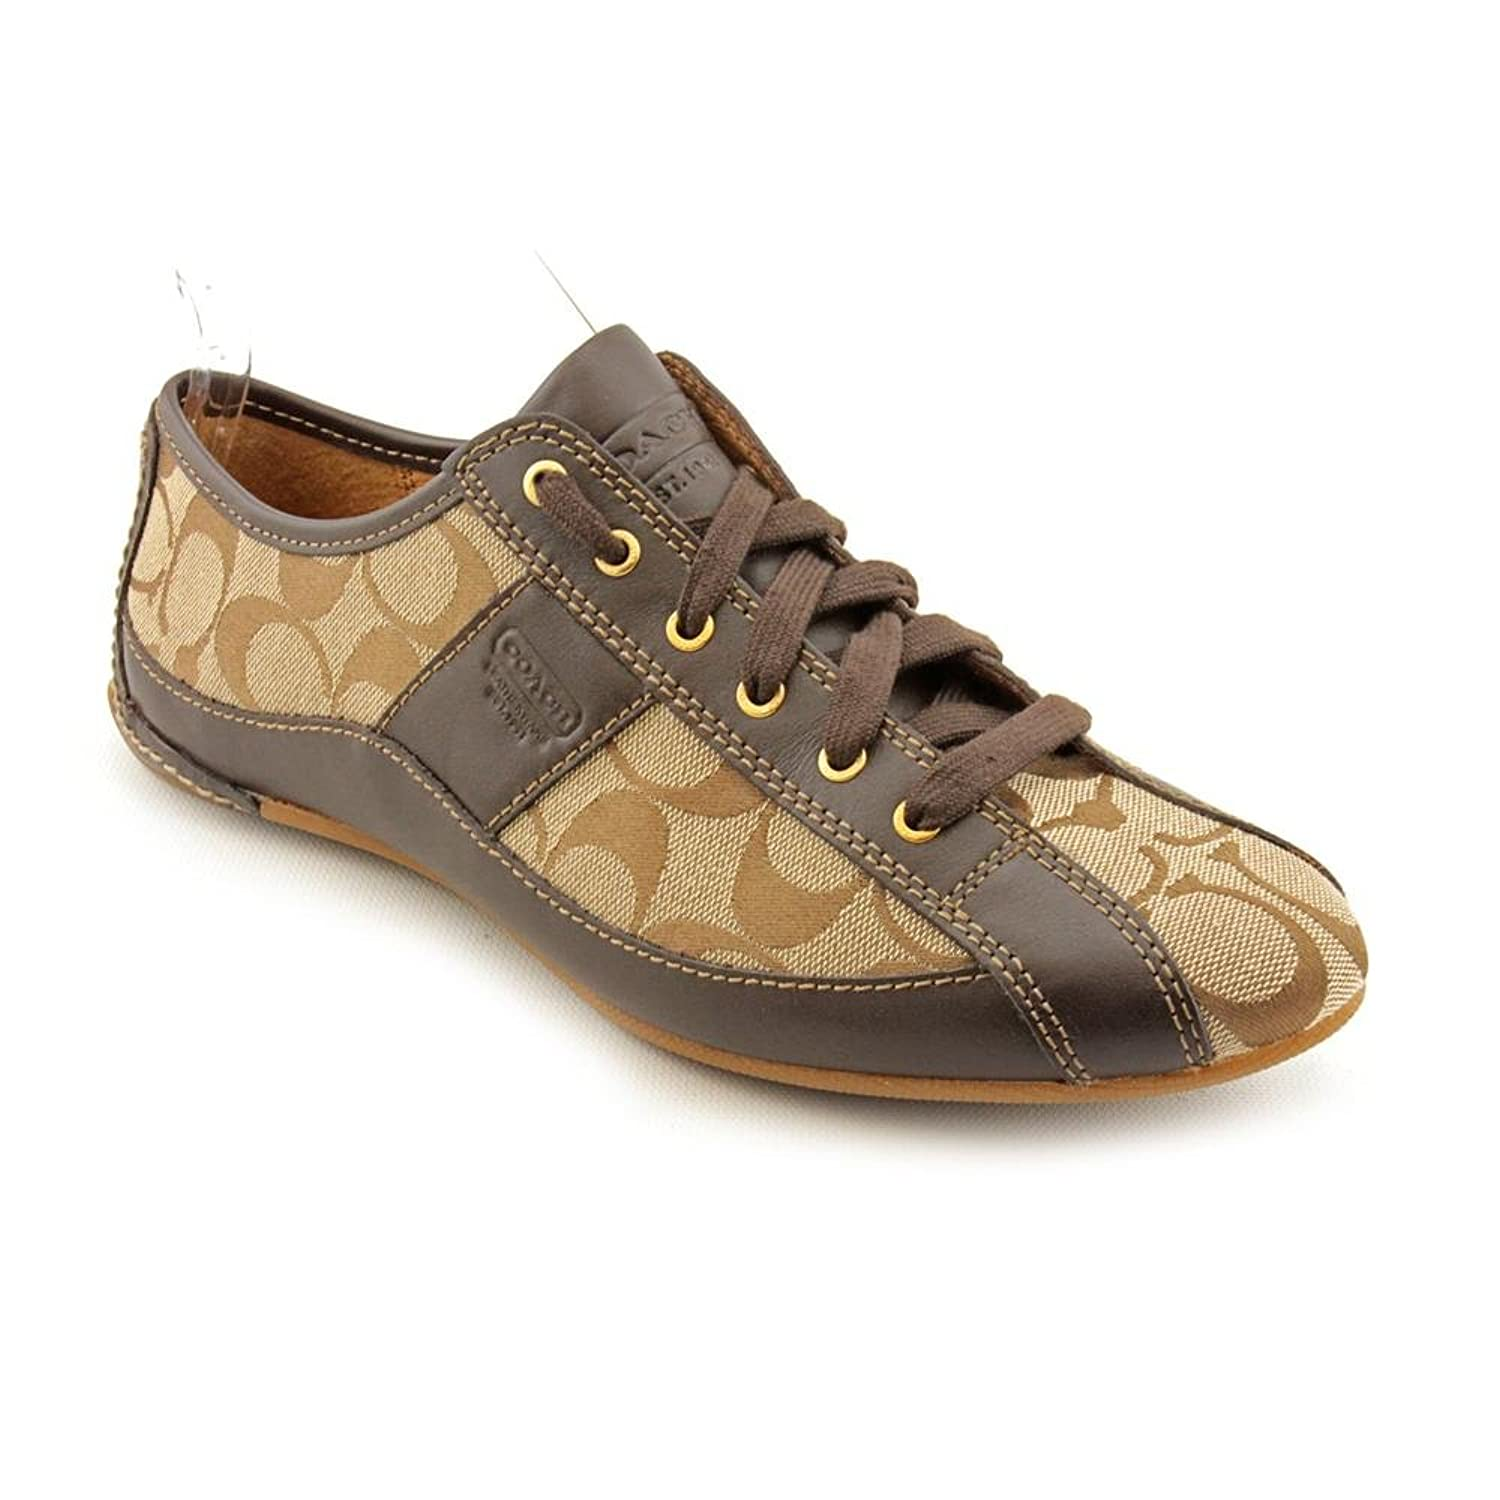 free shipping Coach Suee Women Round Toe Leather Brown